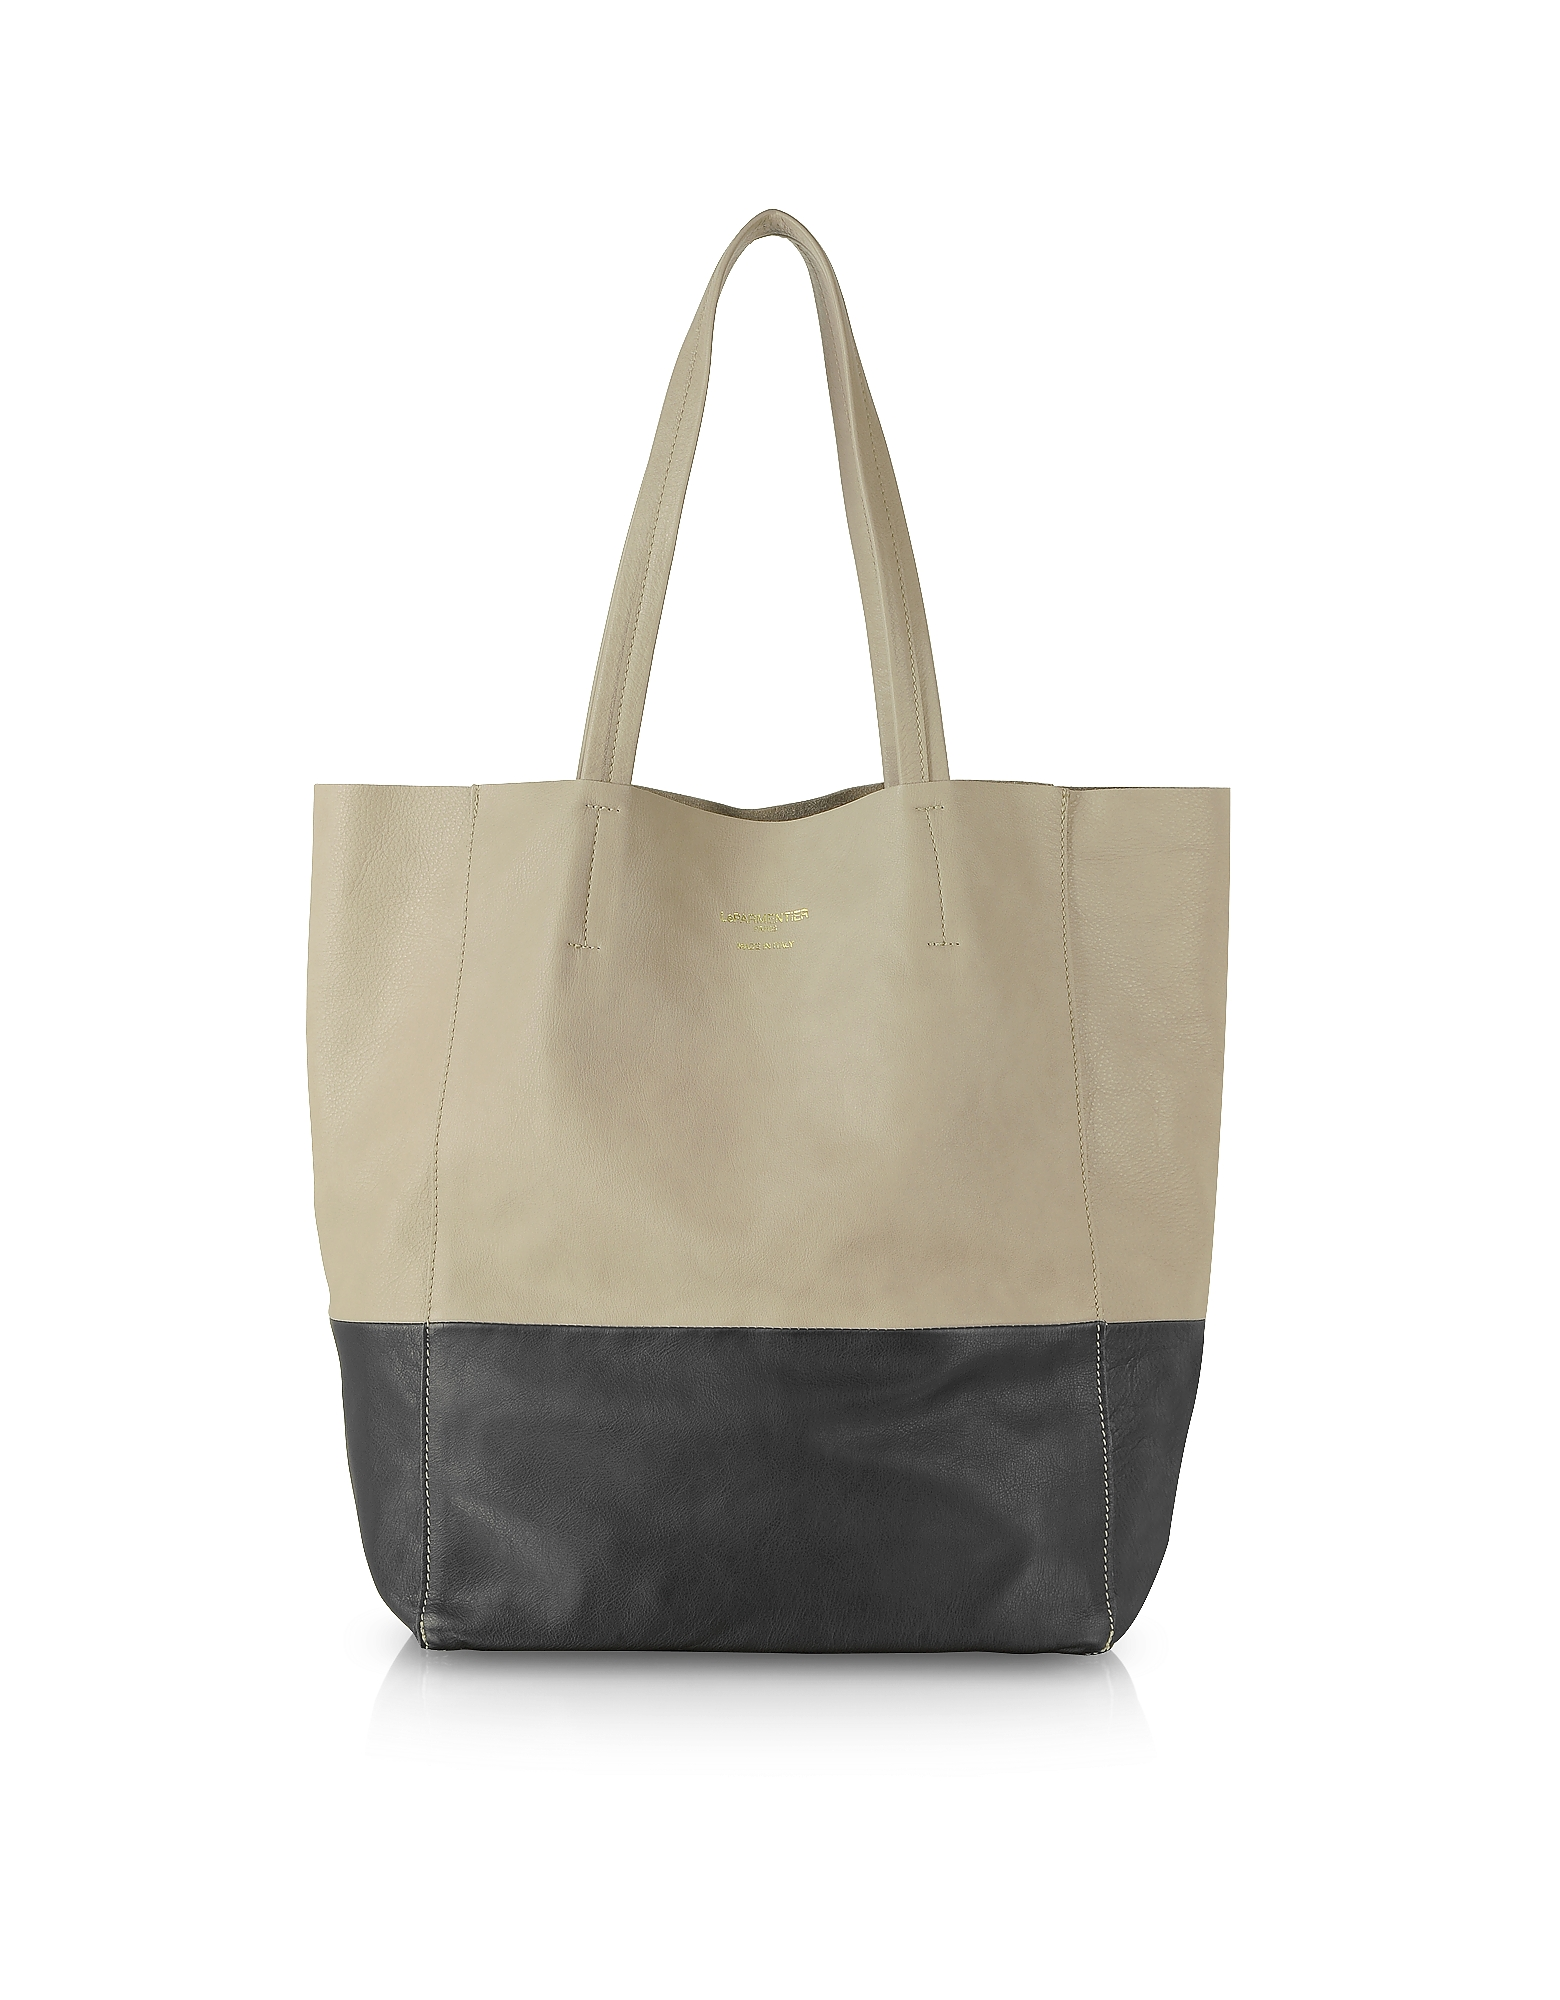 Le Parmentier Handbags, Large Color Block Nappa Leather Tote